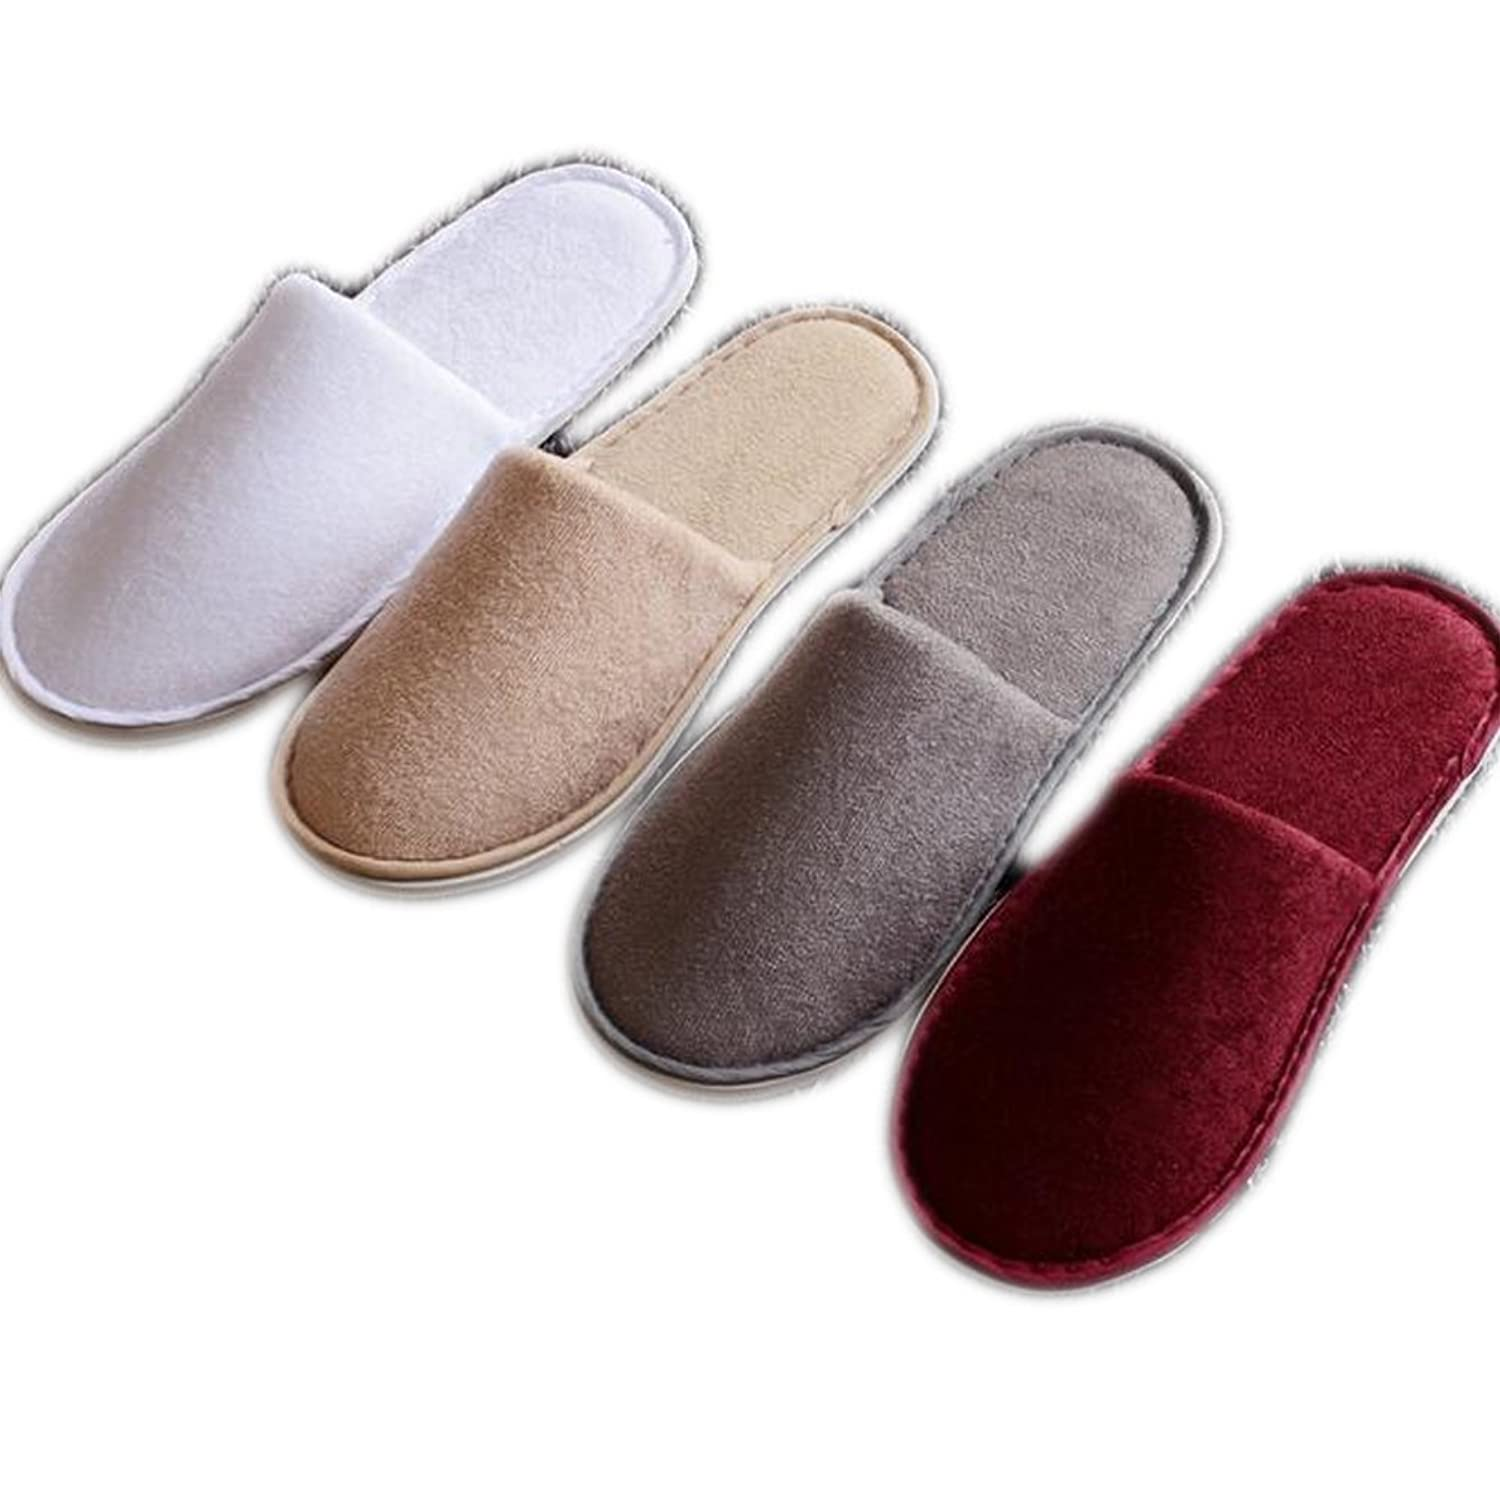 4 Pairs Men Women Cotton Cloth Slip On House Slippers